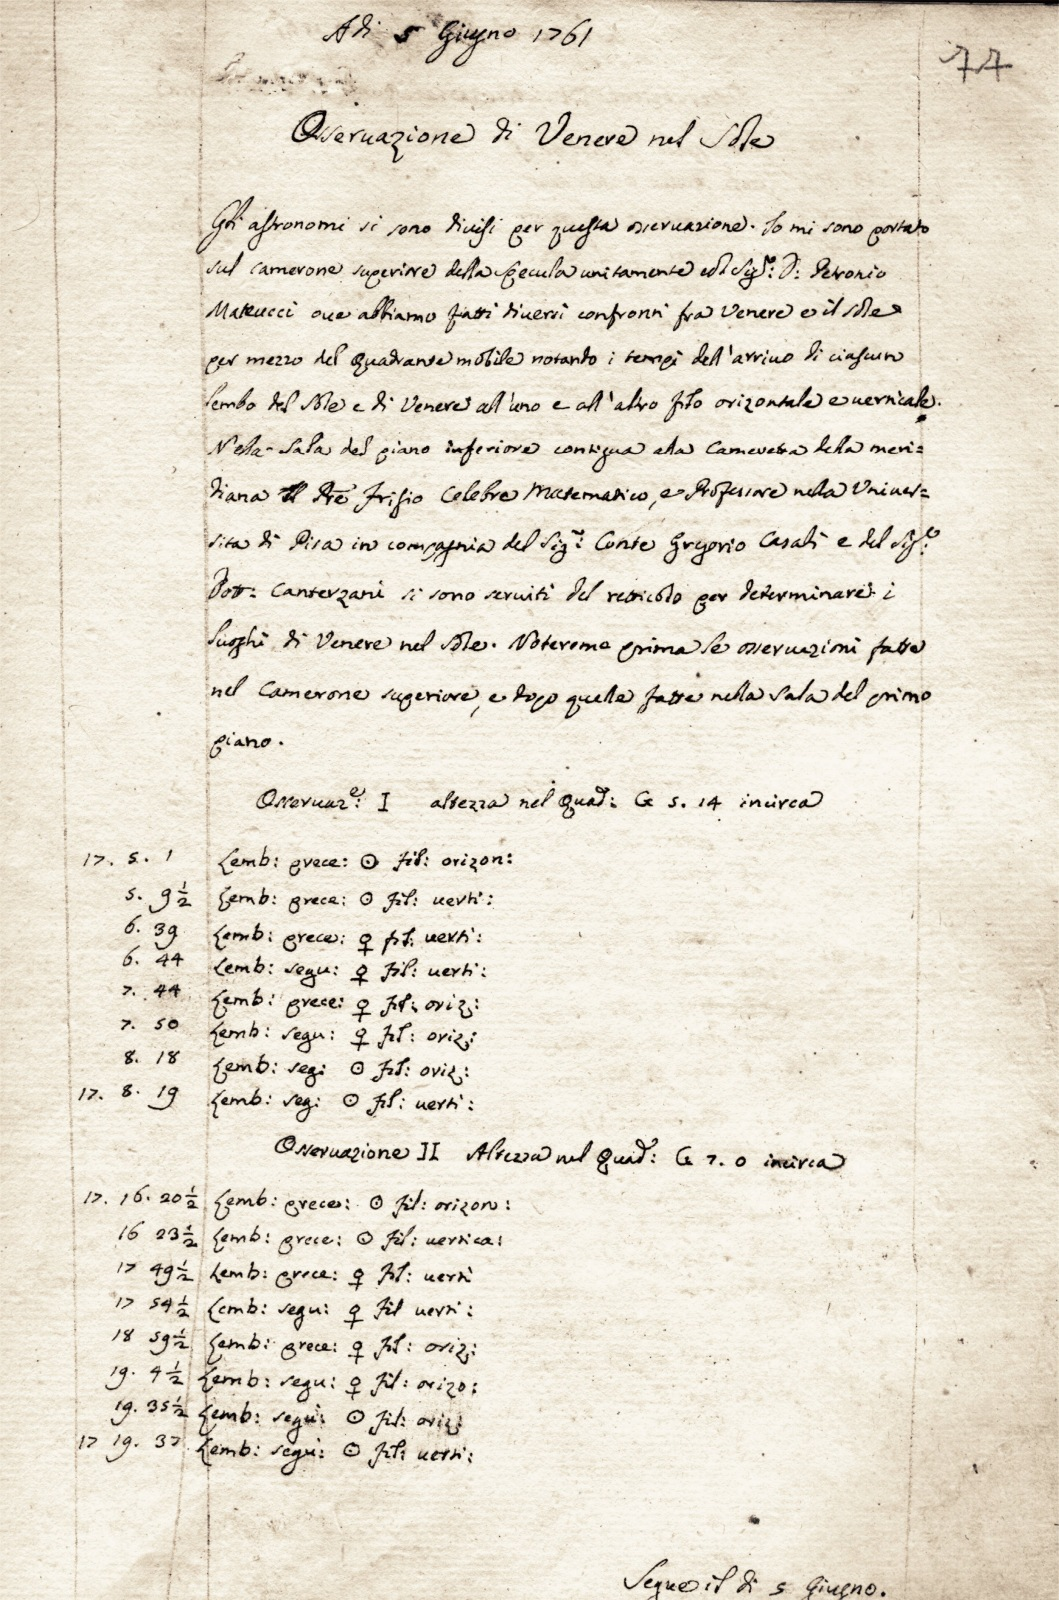 Logbooks of the Bologna astronomical O